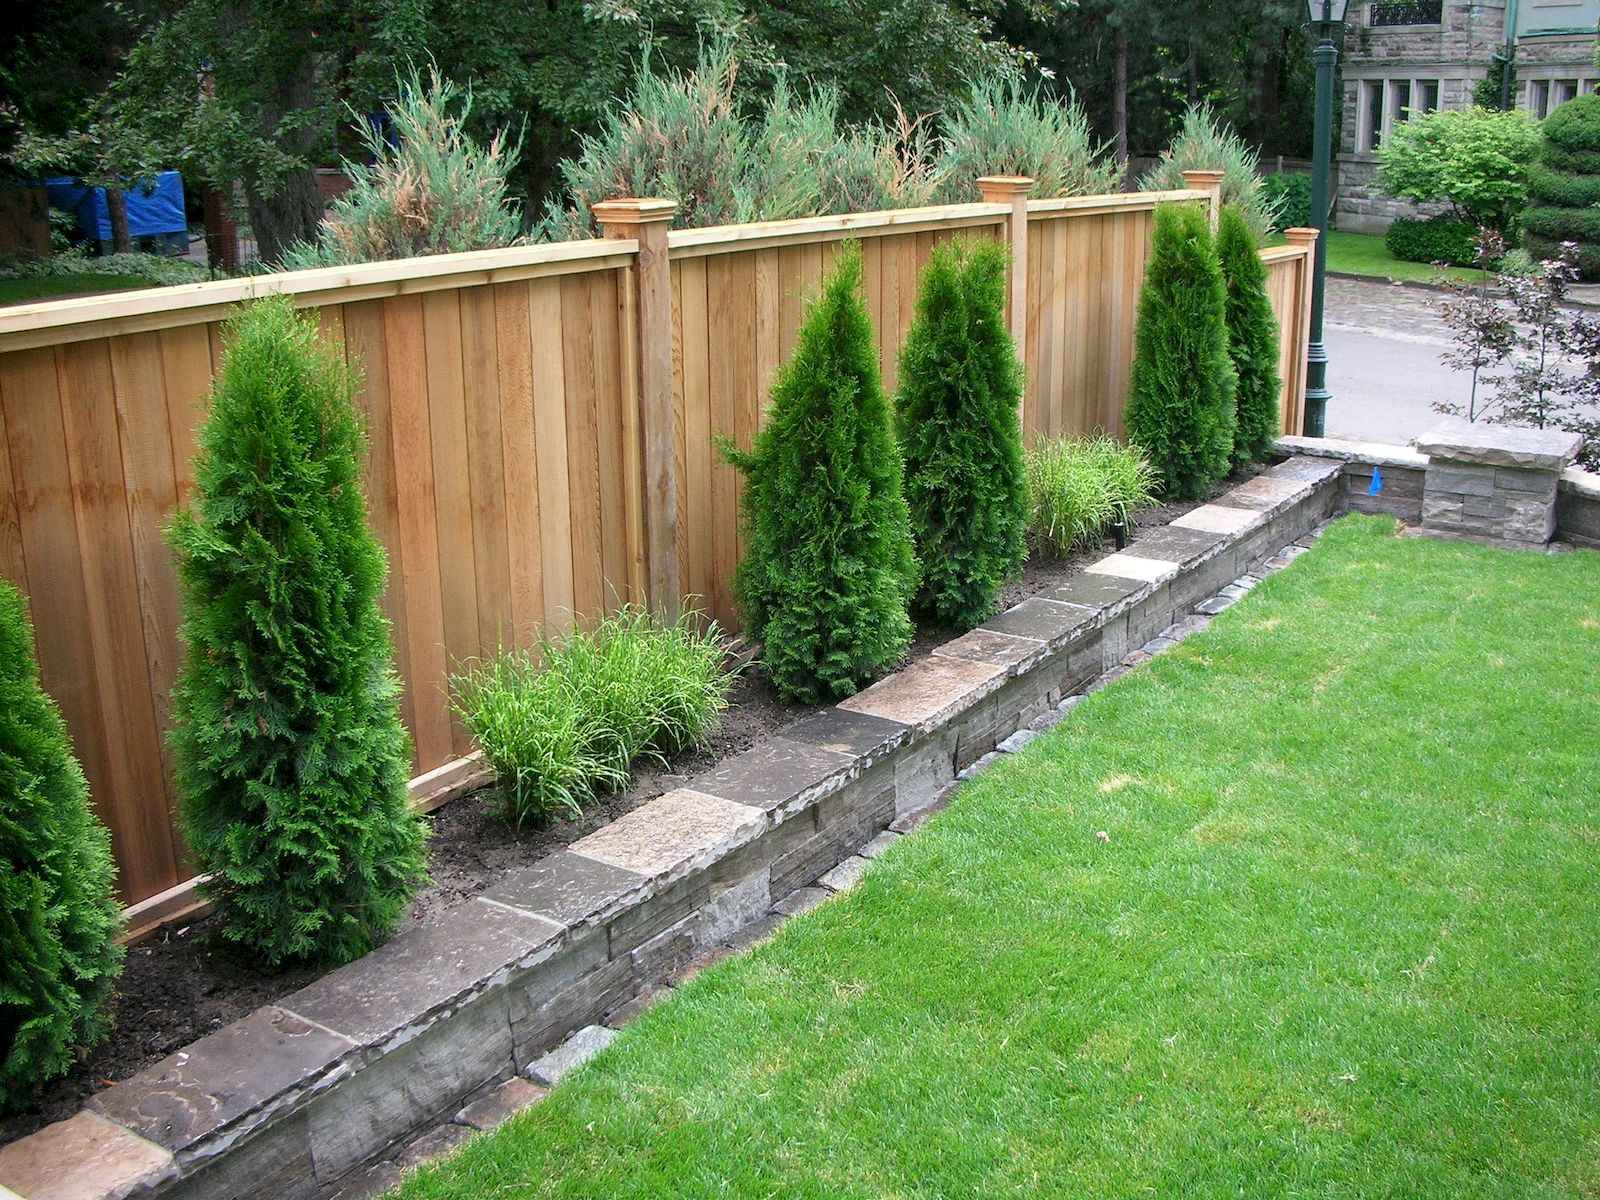 50 Stunning Backyard Privacy Fence Ideas Decorations And Remodel 3 regarding 16 Awesome Concepts of How to Upgrade Privacy Fence Ideas For Backyard